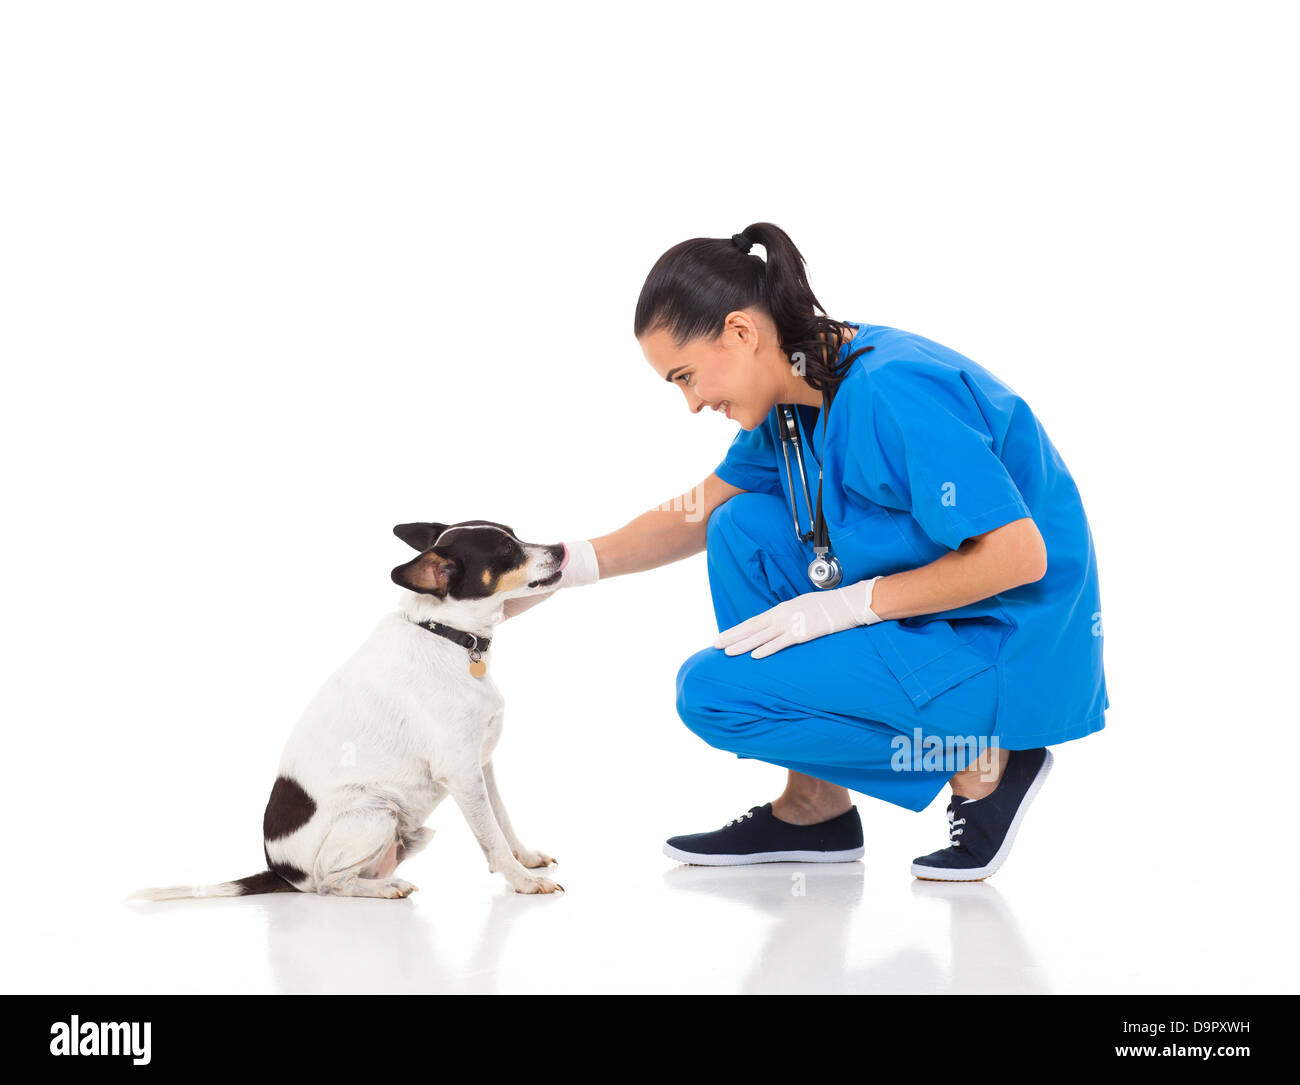 veterinarian female doctor playing with pet dog - Stock Image